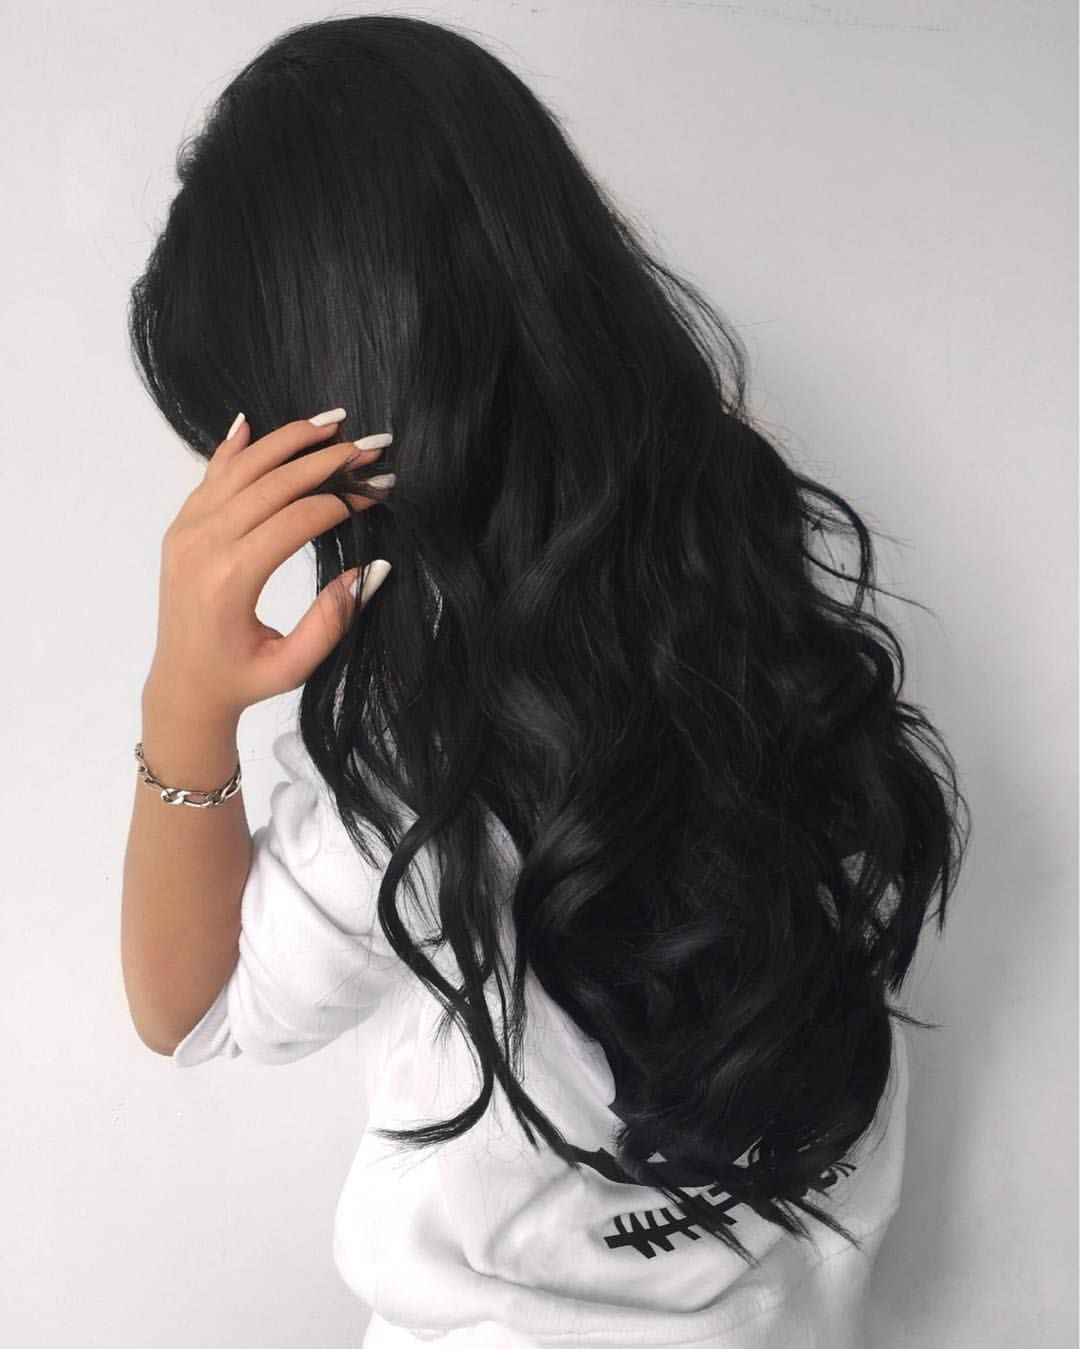 5176c7bc89a Jesvia hair Body wave this is always the most pretty style hair.   Blackhairstyles Black